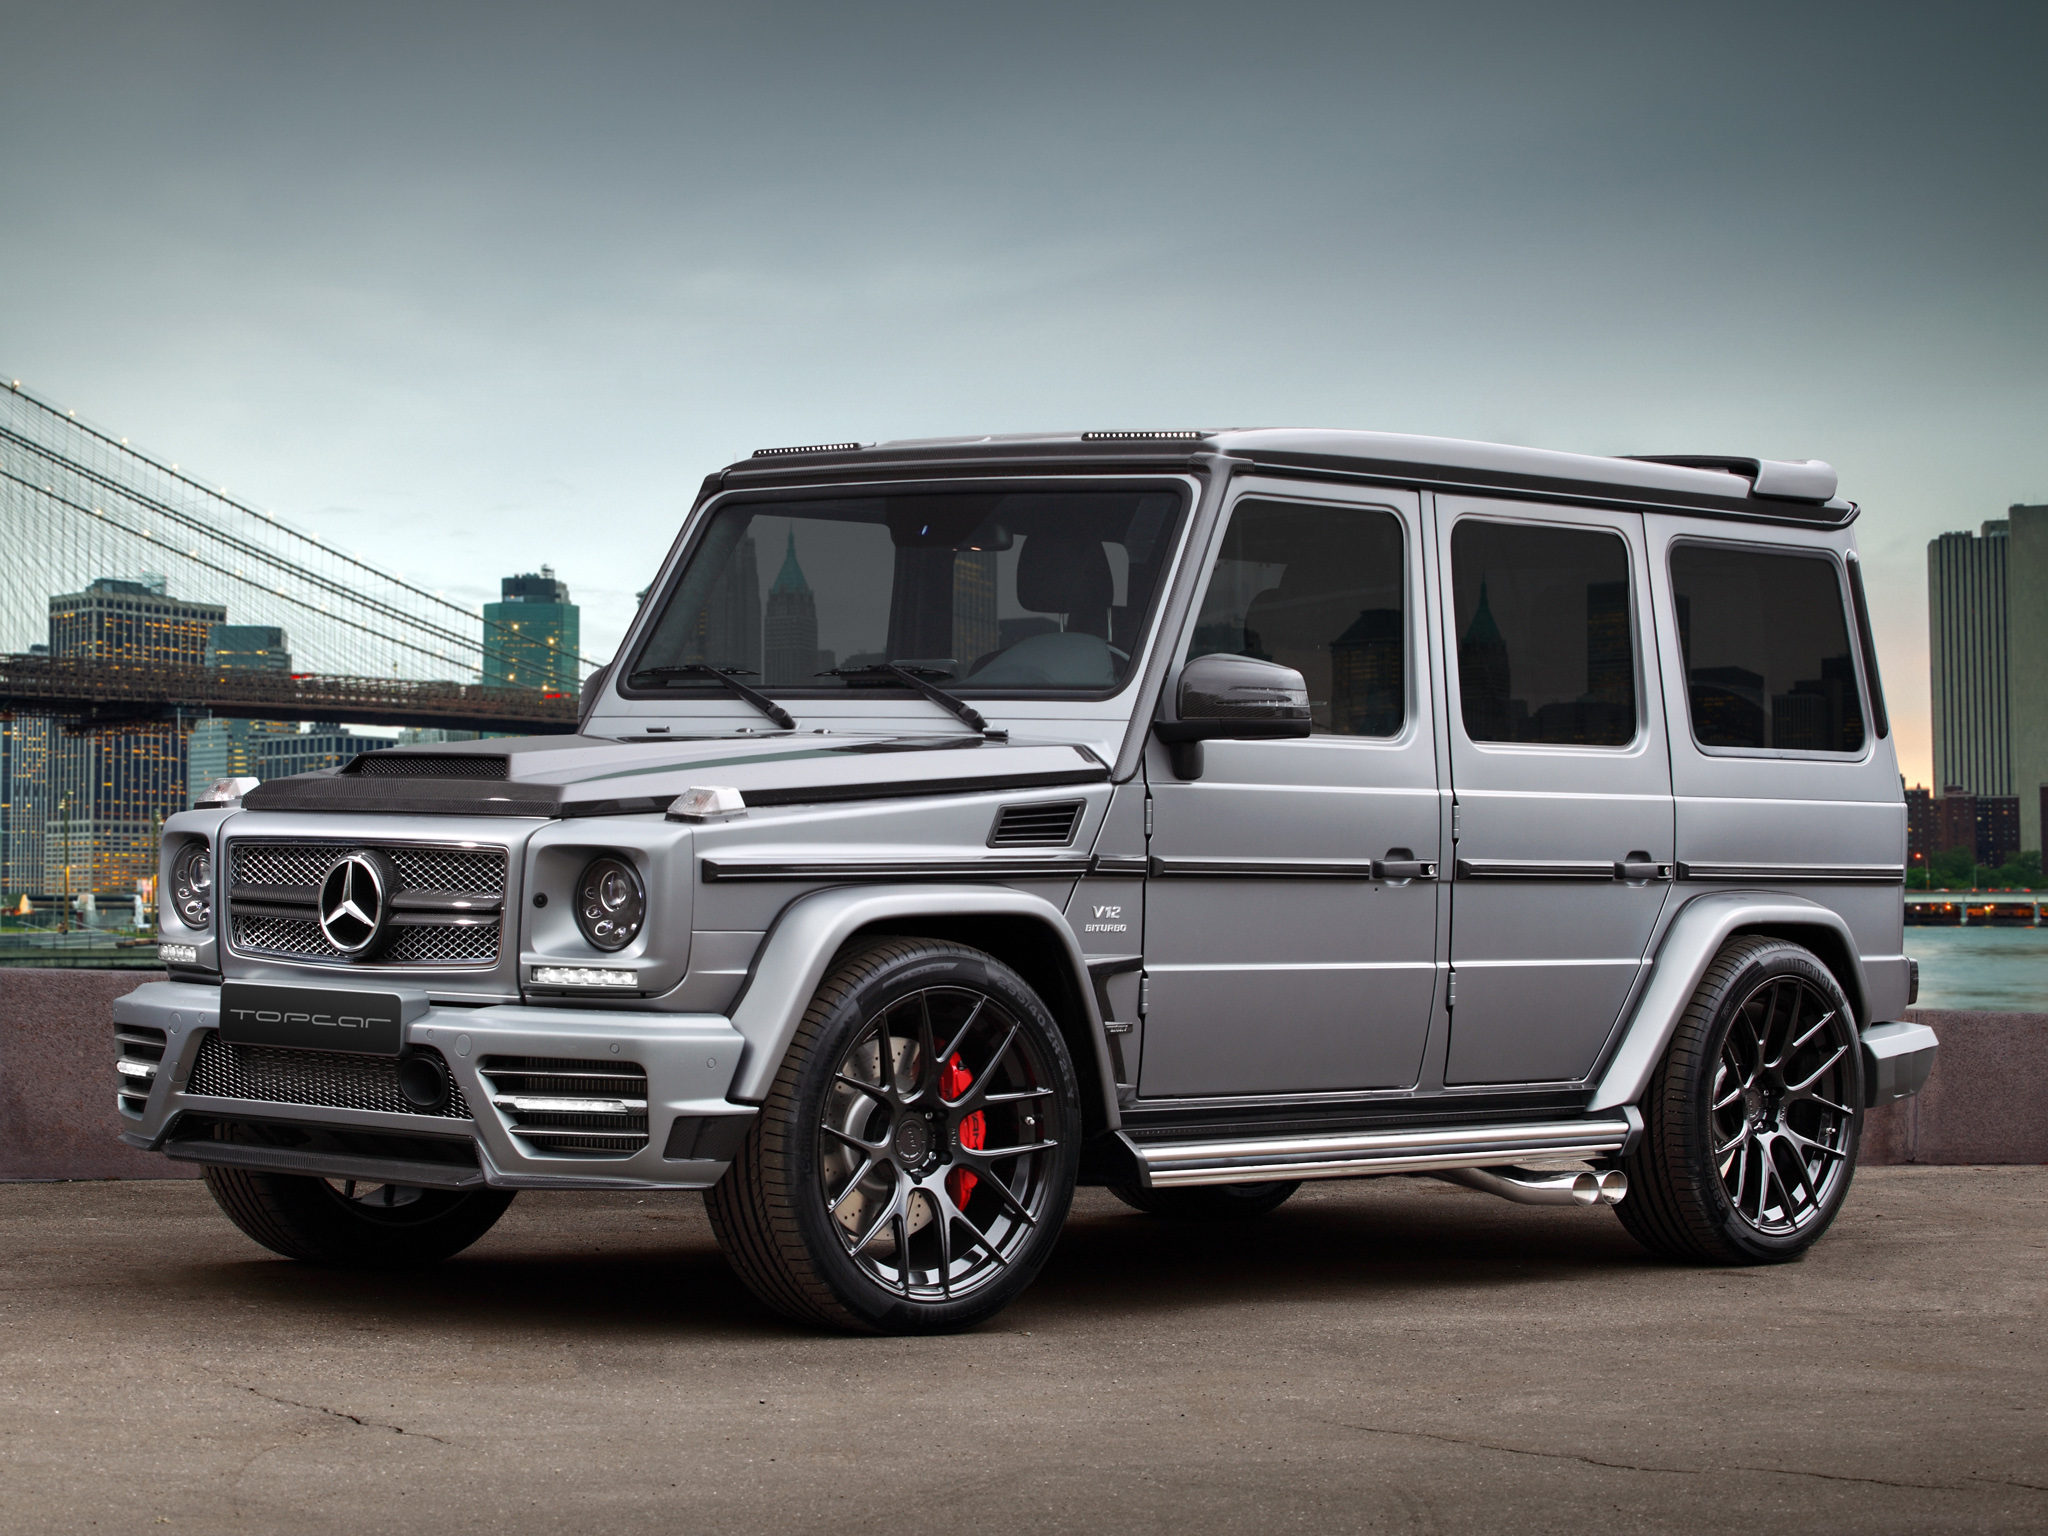 2013 mansory mercedes benz g65 amg w463 suv tuning j. Black Bedroom Furniture Sets. Home Design Ideas